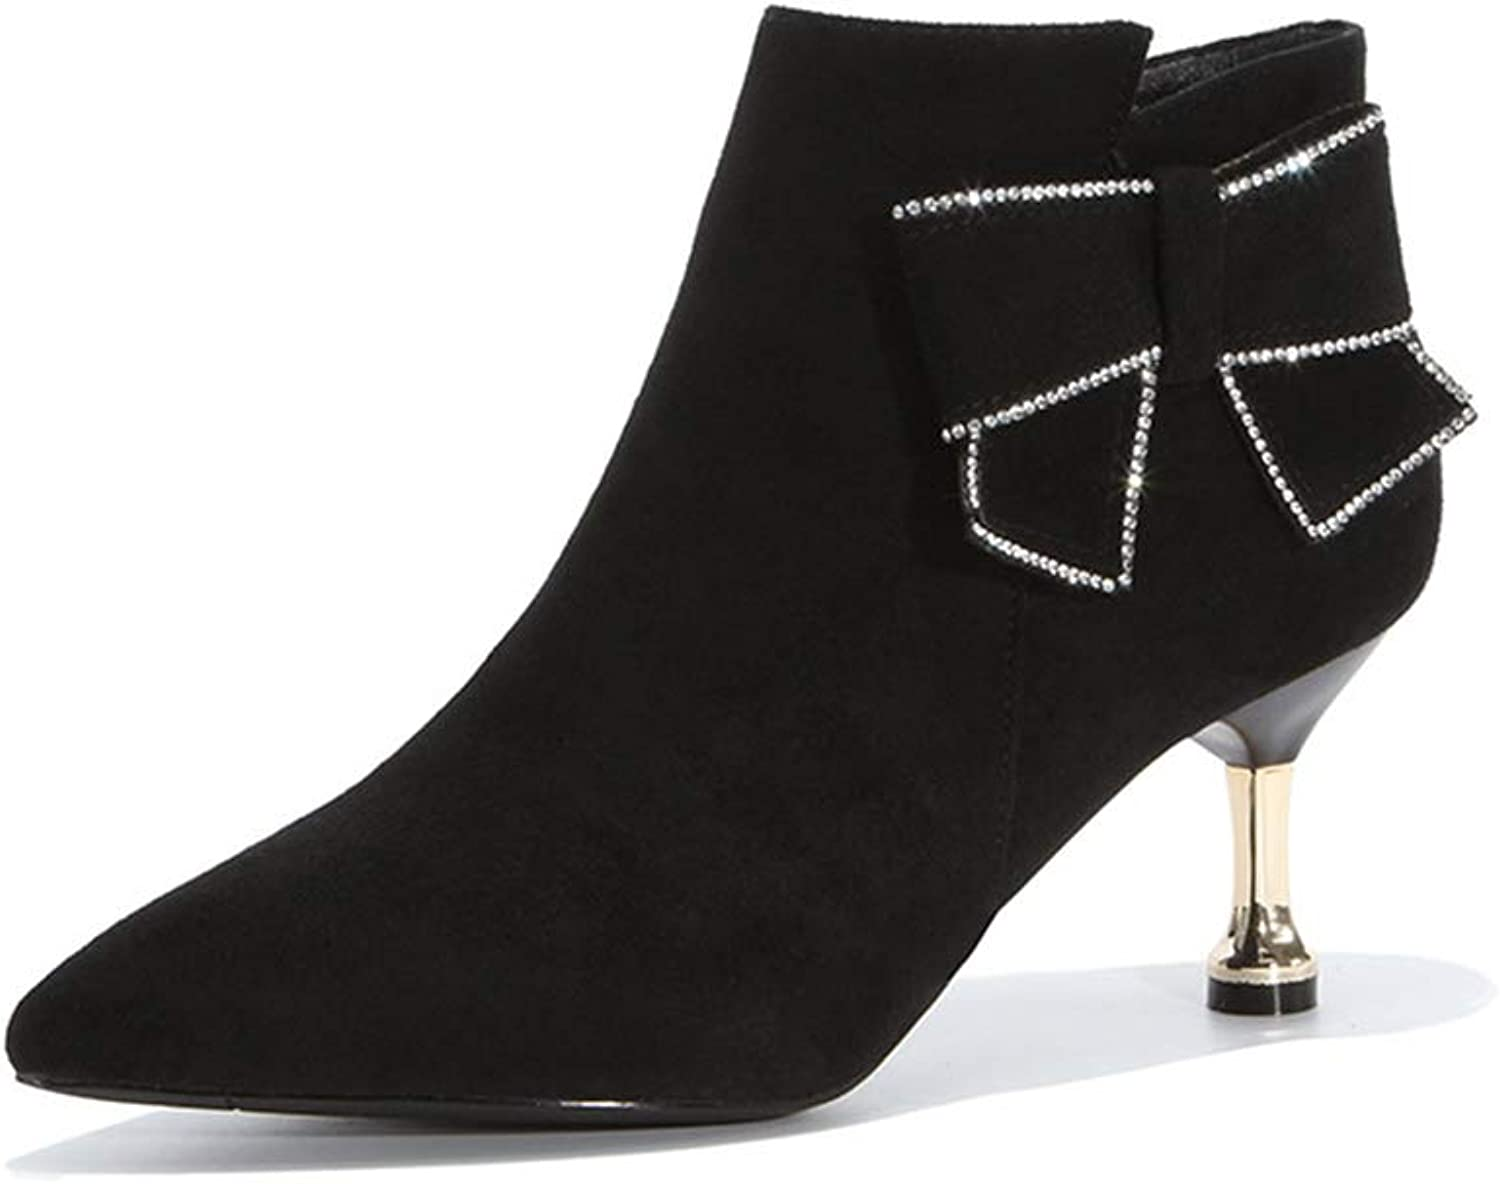 Women's Ankle Boots Suede Fashion Bow Dress shoes Chunky Heel shoes Martin Boots Pointed High Heels Zipper Martin Boots Black (color   Black, Size   36)